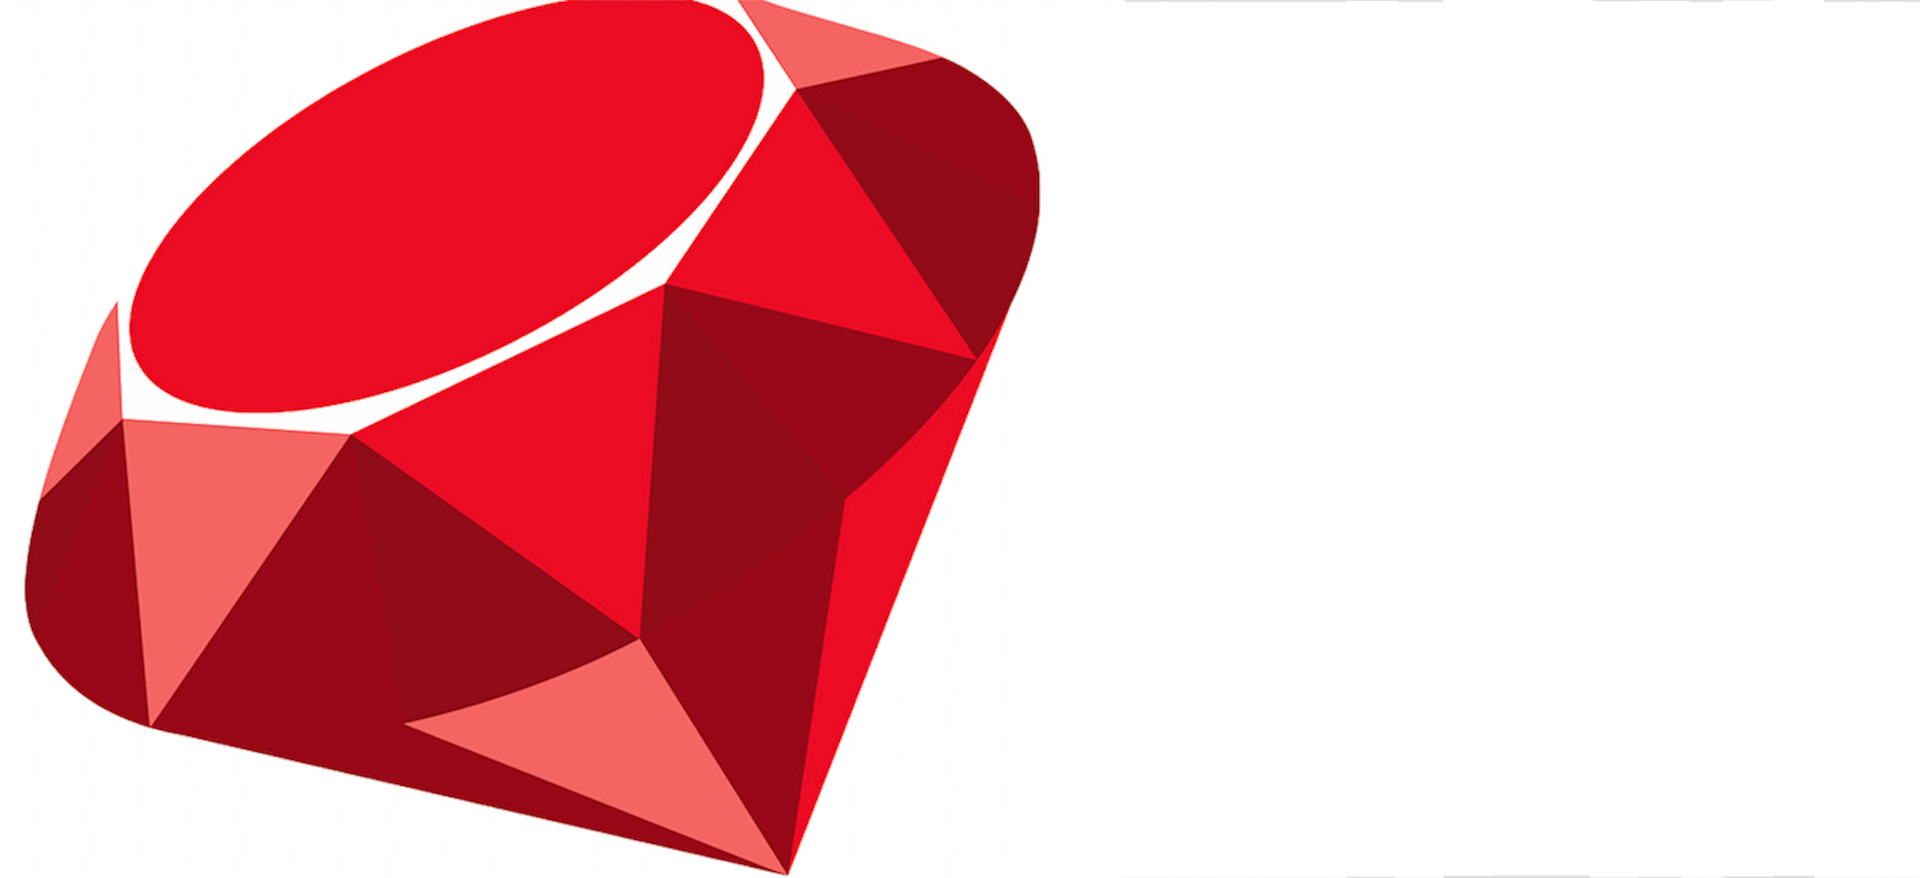 Ruby 2.6 now available on Red Hat Enterprise Linux 7